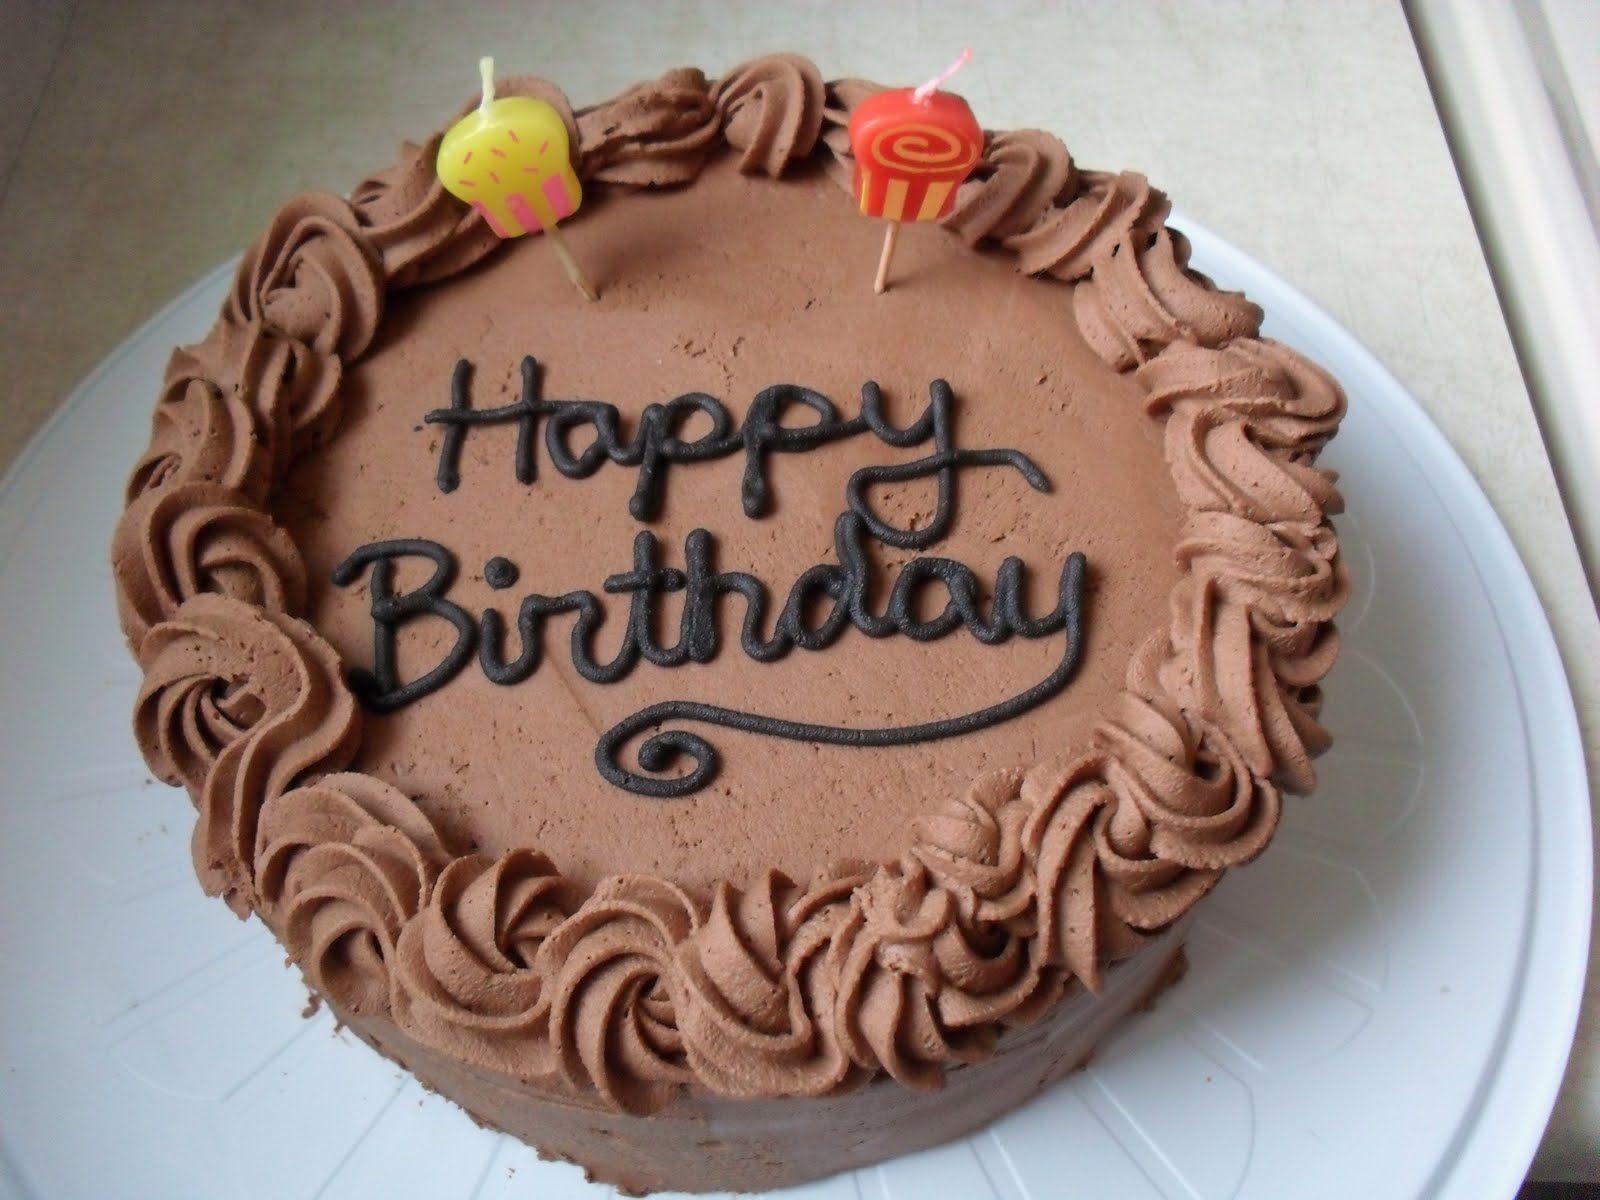 My Kind Of Chocolate Birthday Cake Recipes — Dishmaps